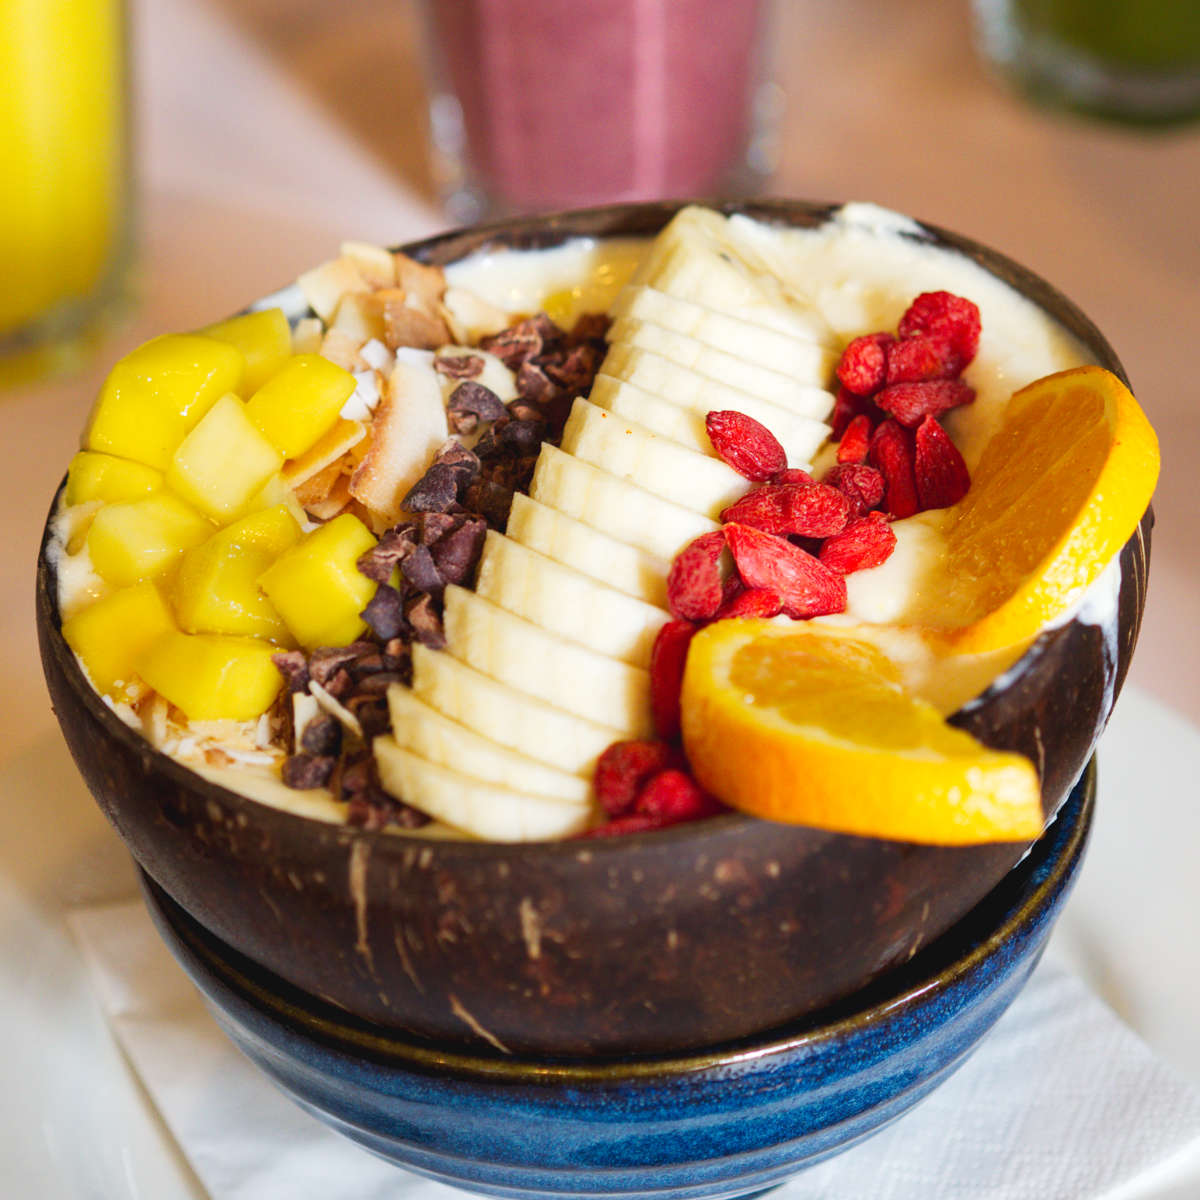 Vegan tropical smoothie bowl at Hula Juice Bar, Edinburgh